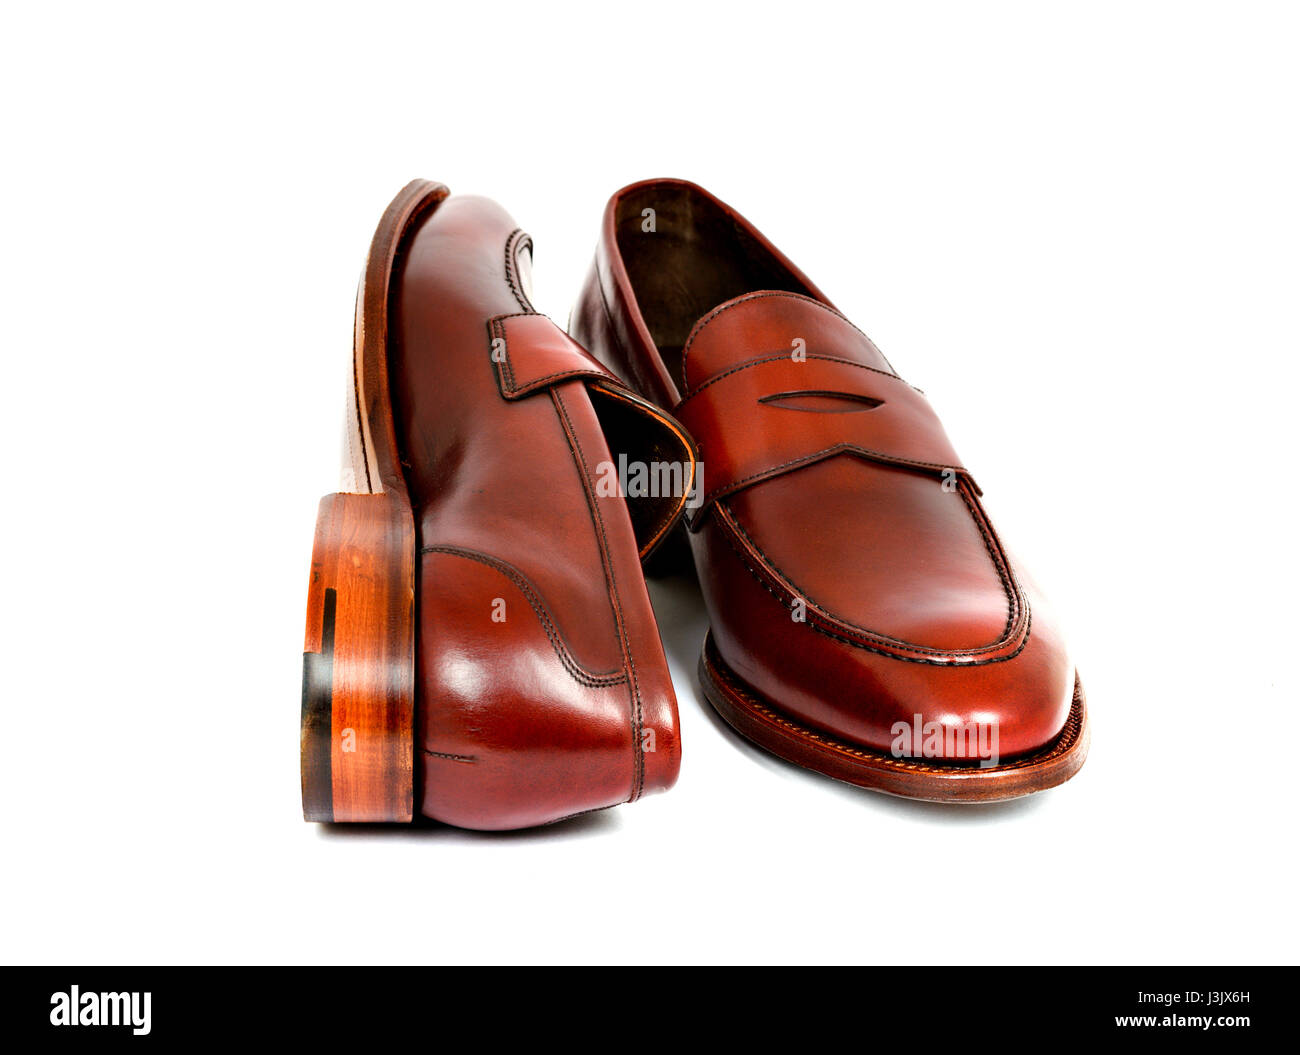 e84cedf9d03 Pair of leather burgundy penny loafer shoes together on white background.  One shoe on side. Horizontal image